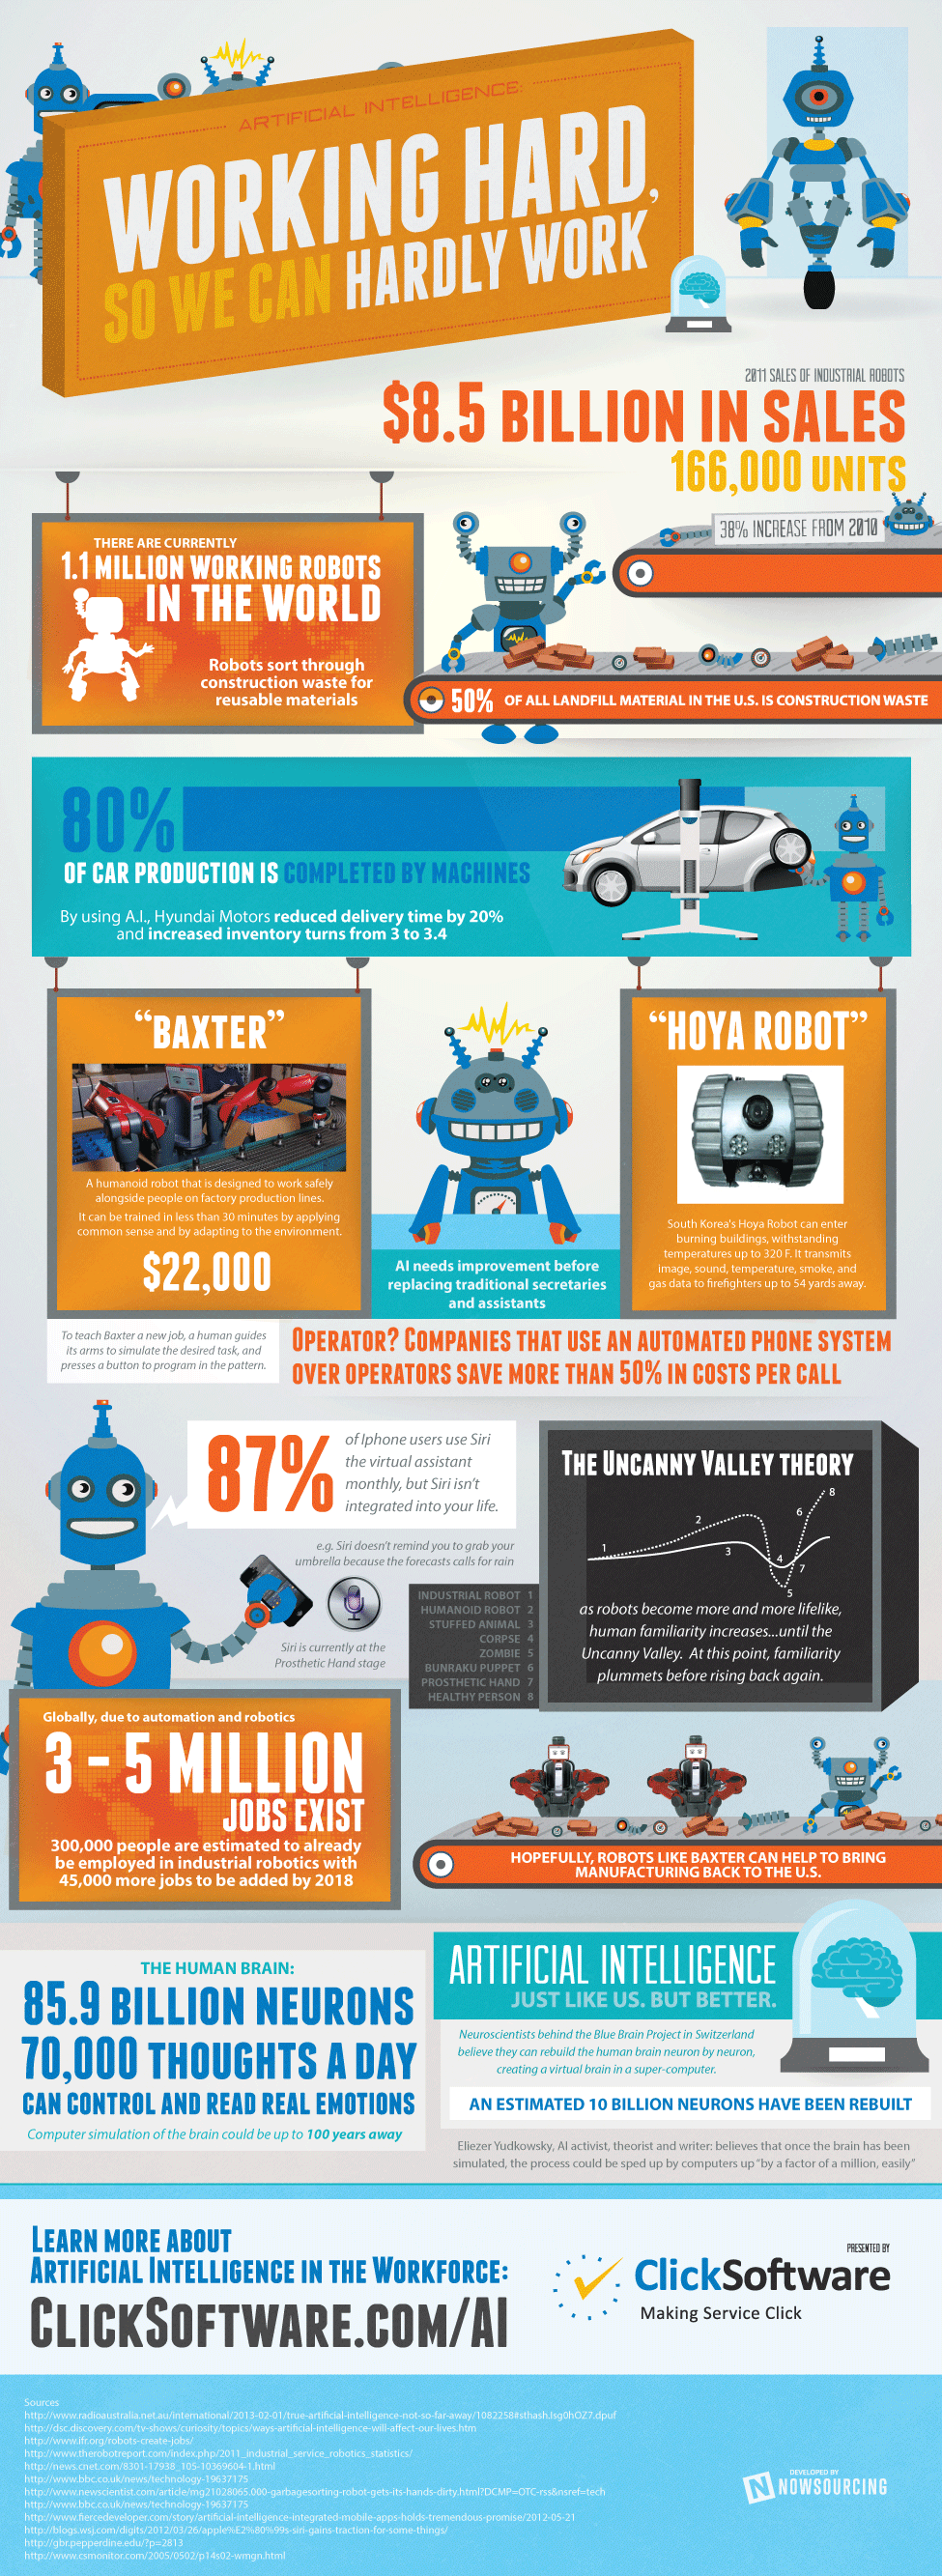 Artificial Intelligence Working Hard So We Can Hardly Work Science And Technology Job Shop Infographic Working Robots